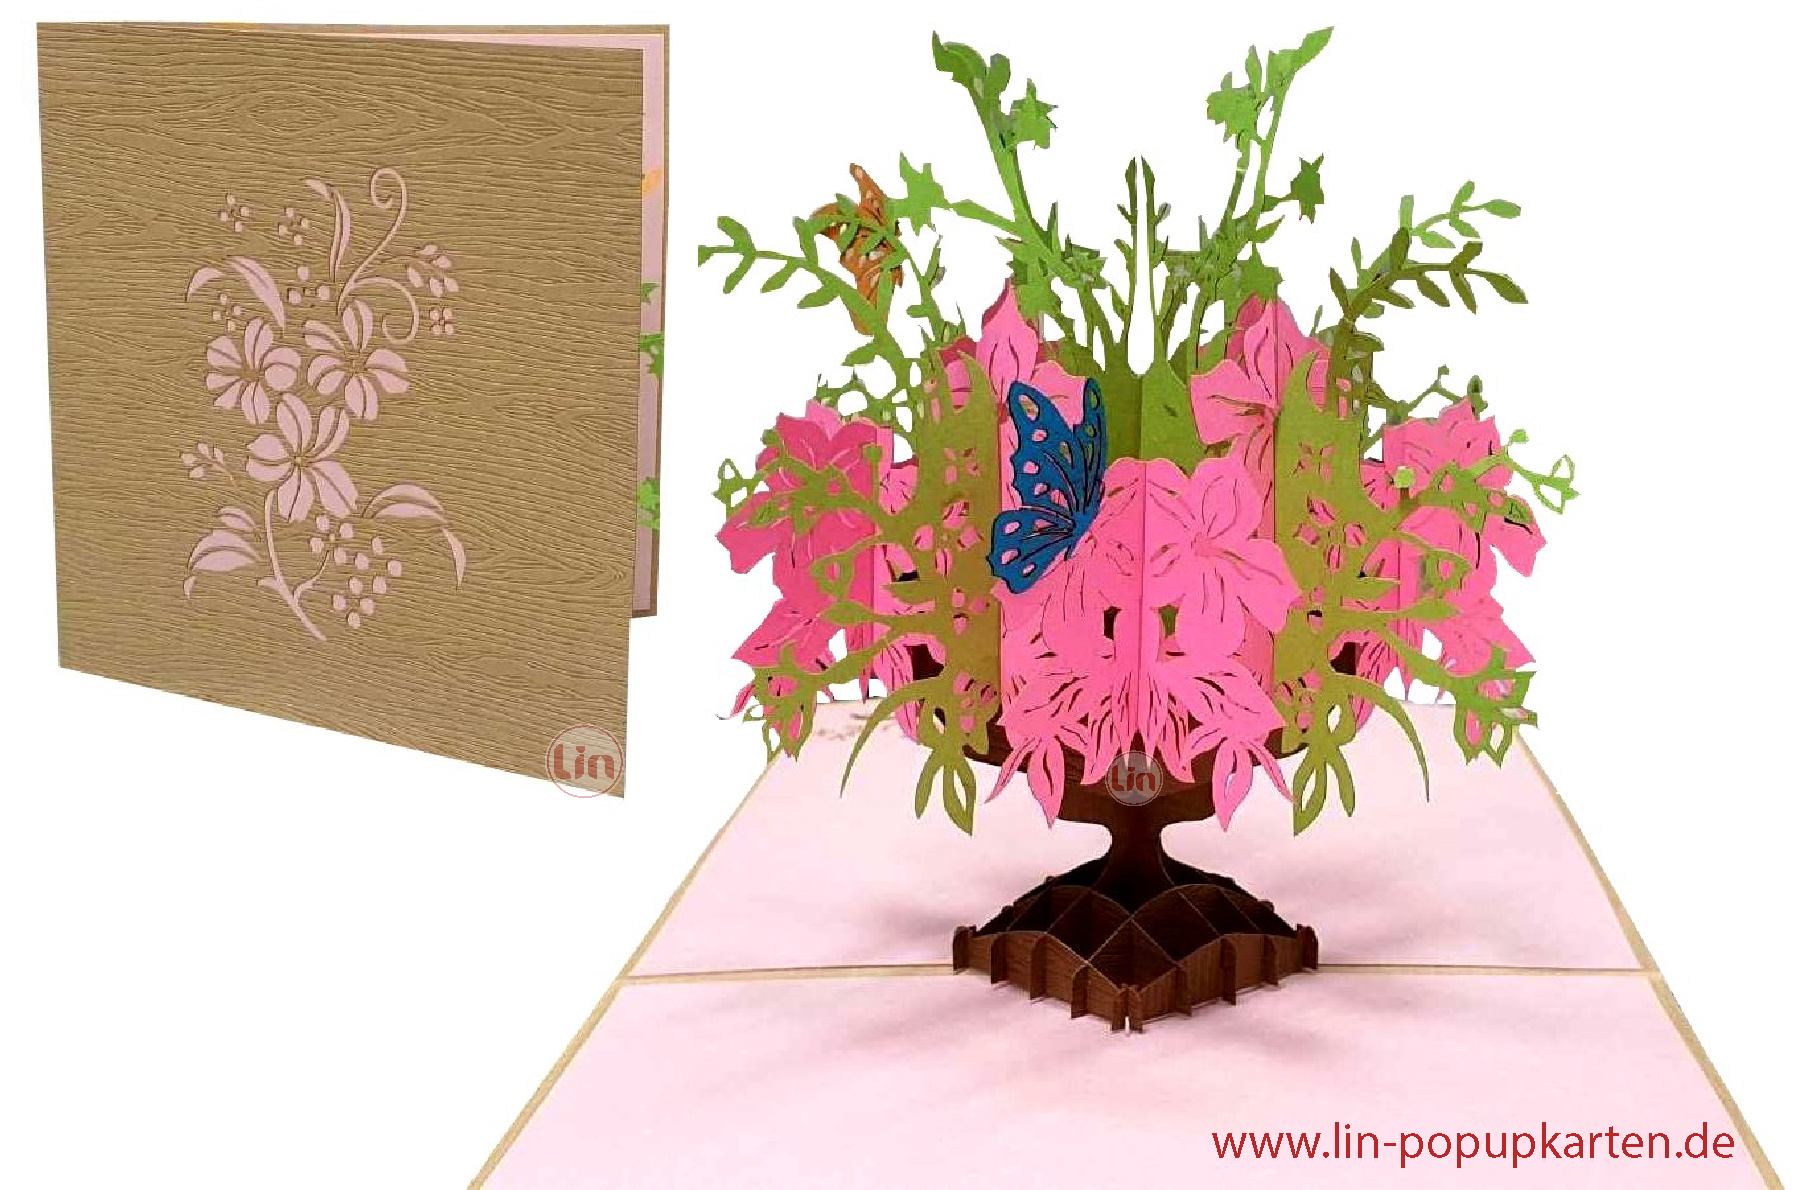 LIN17652, 3D Pop Up Greeting Card, Best Wishes, Birthday, Mother's Day, Thank You, Good Luck, Flowers, Pink Flowers in a Vase, N379